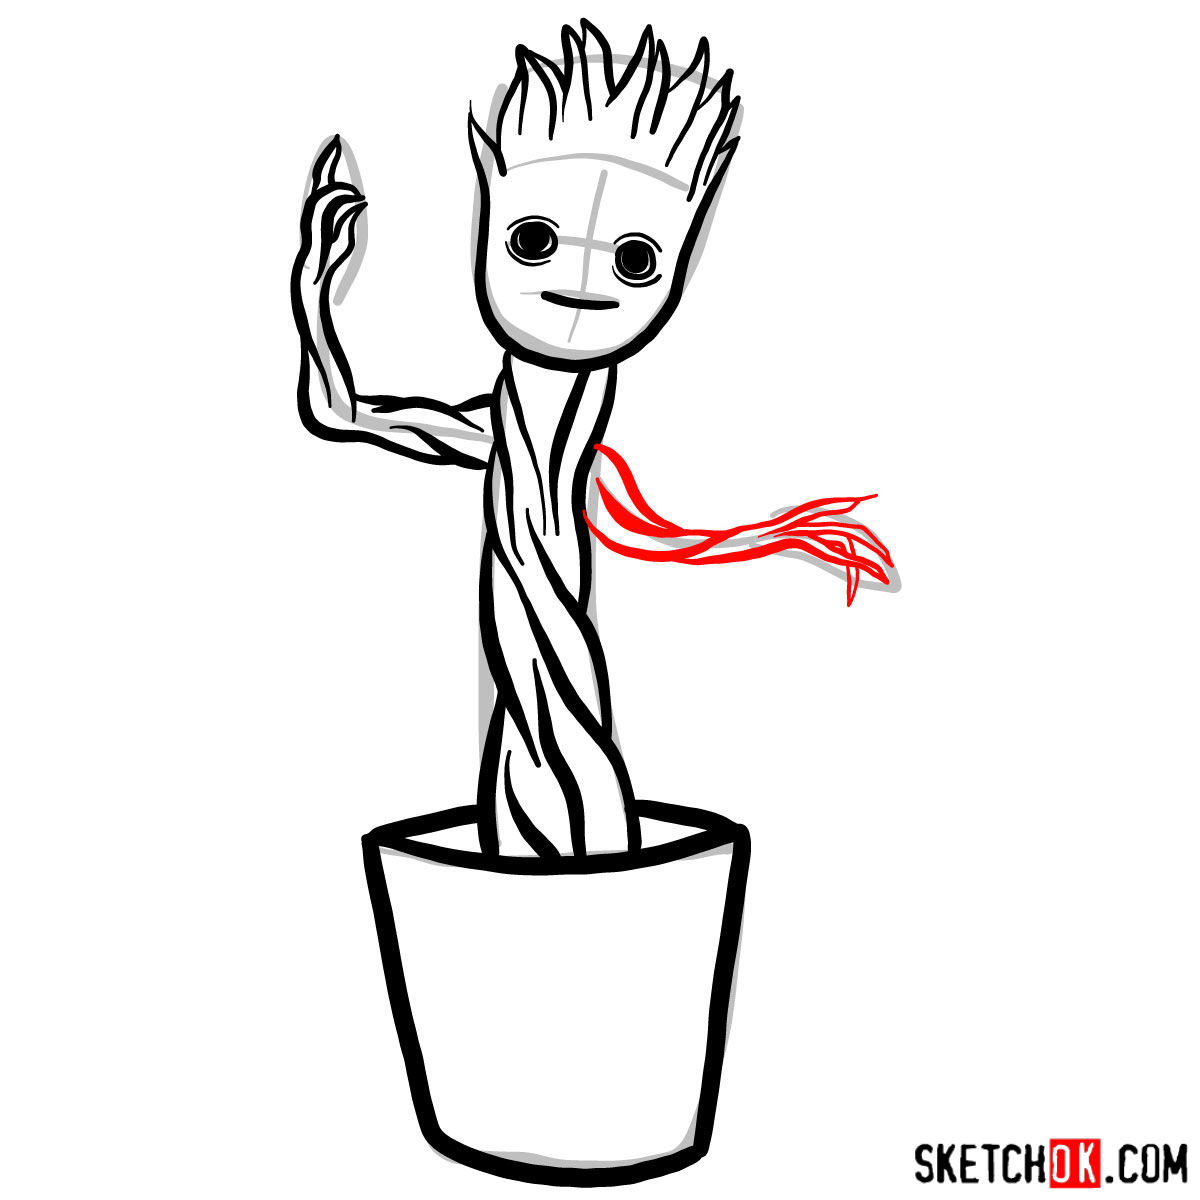 Baby Groot in a pot - step by step drawing tutorial - step 08